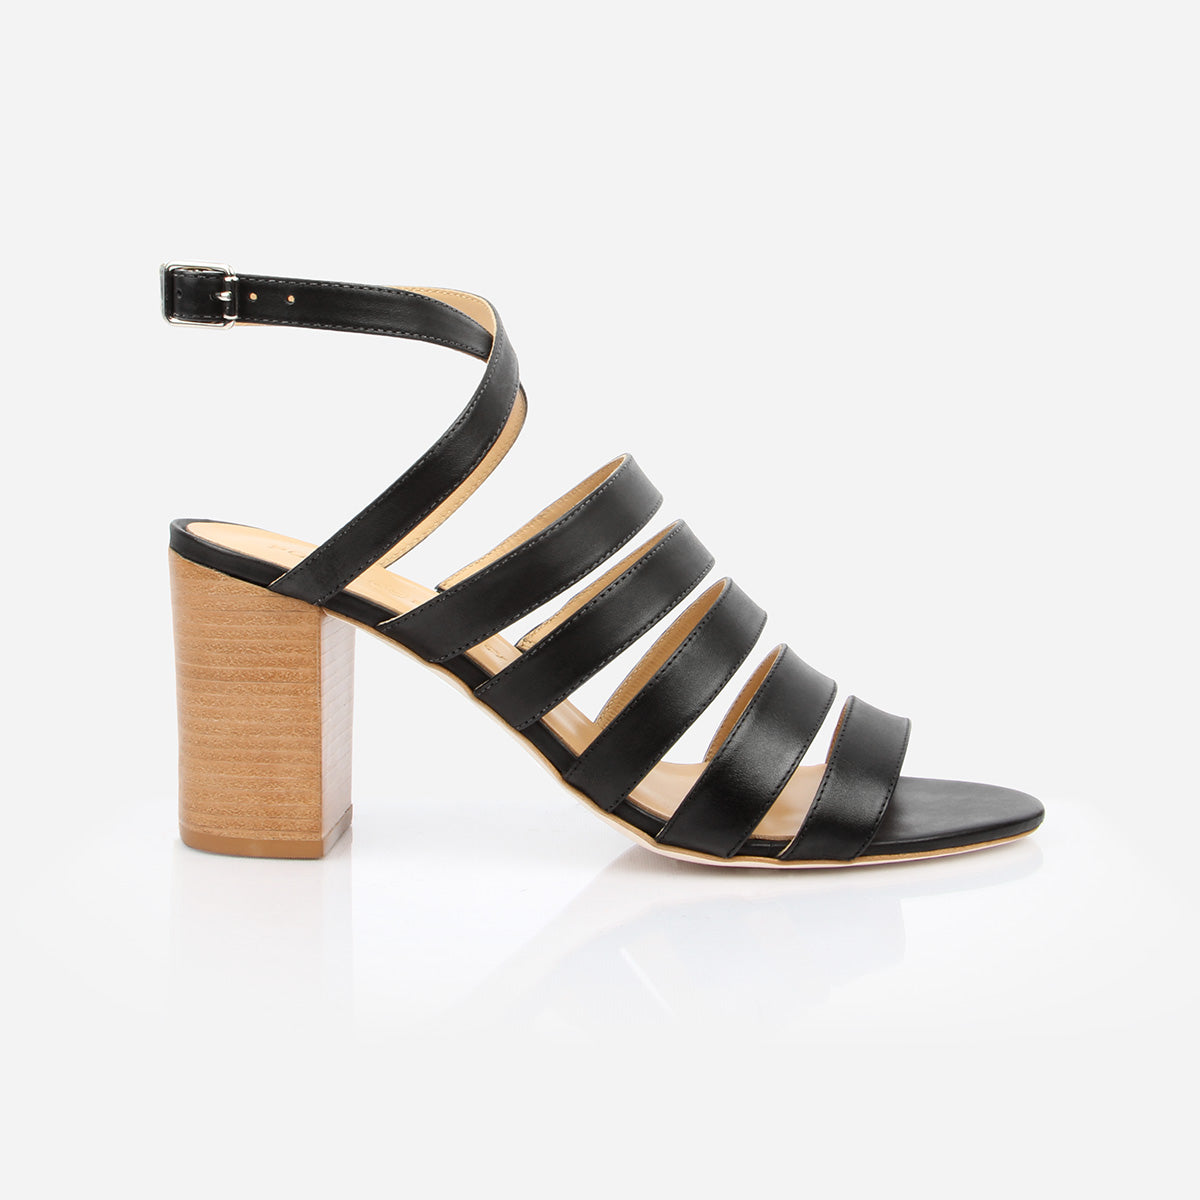 The Victoria Sandal in Black Nubuck - Poppy Barley